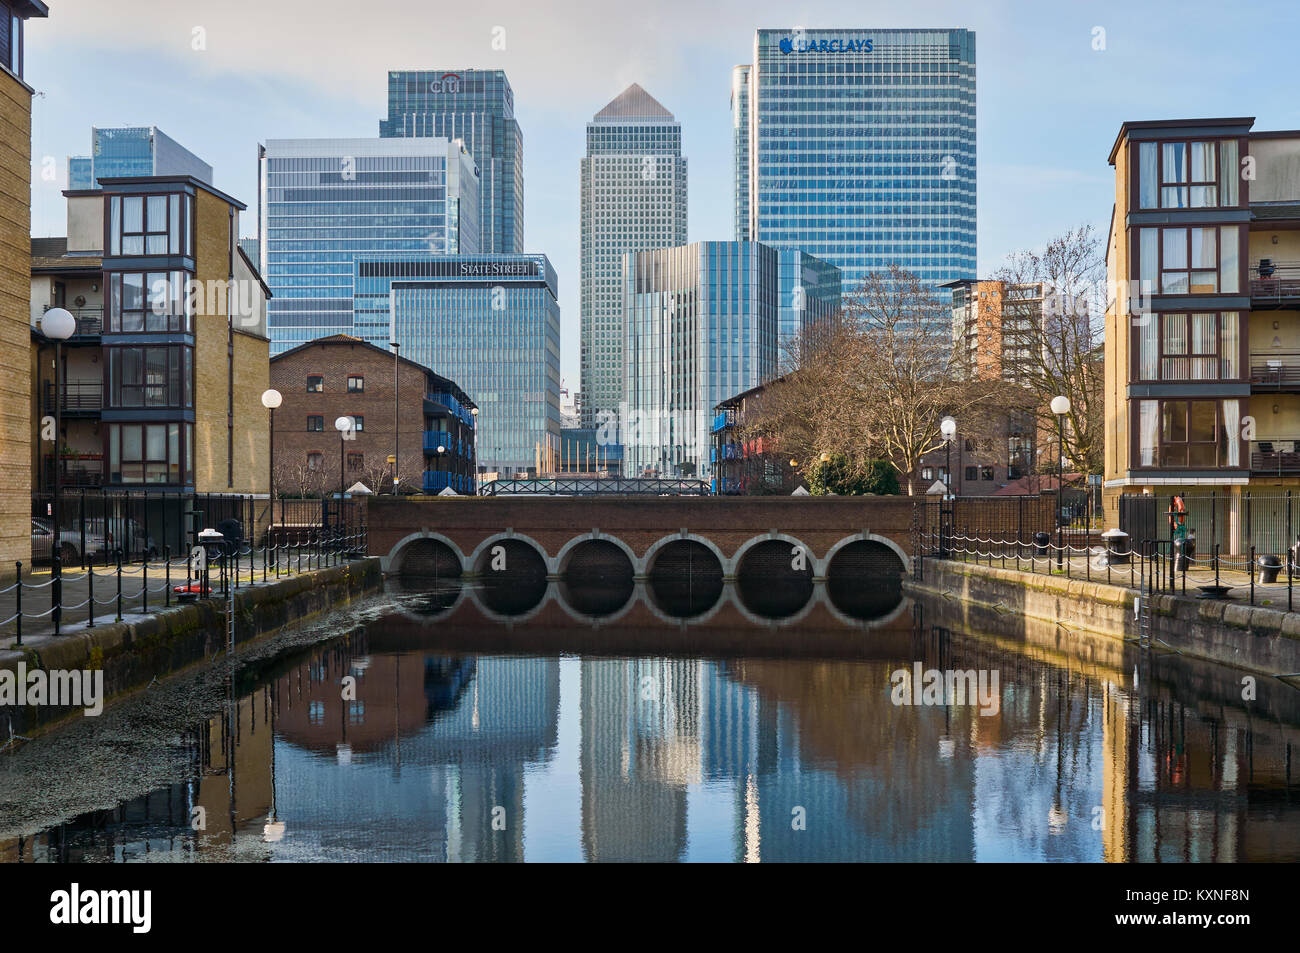 Canary Wharf  Business District on the Isle of Dogs, East London UK, viewed from the East - Stock Image